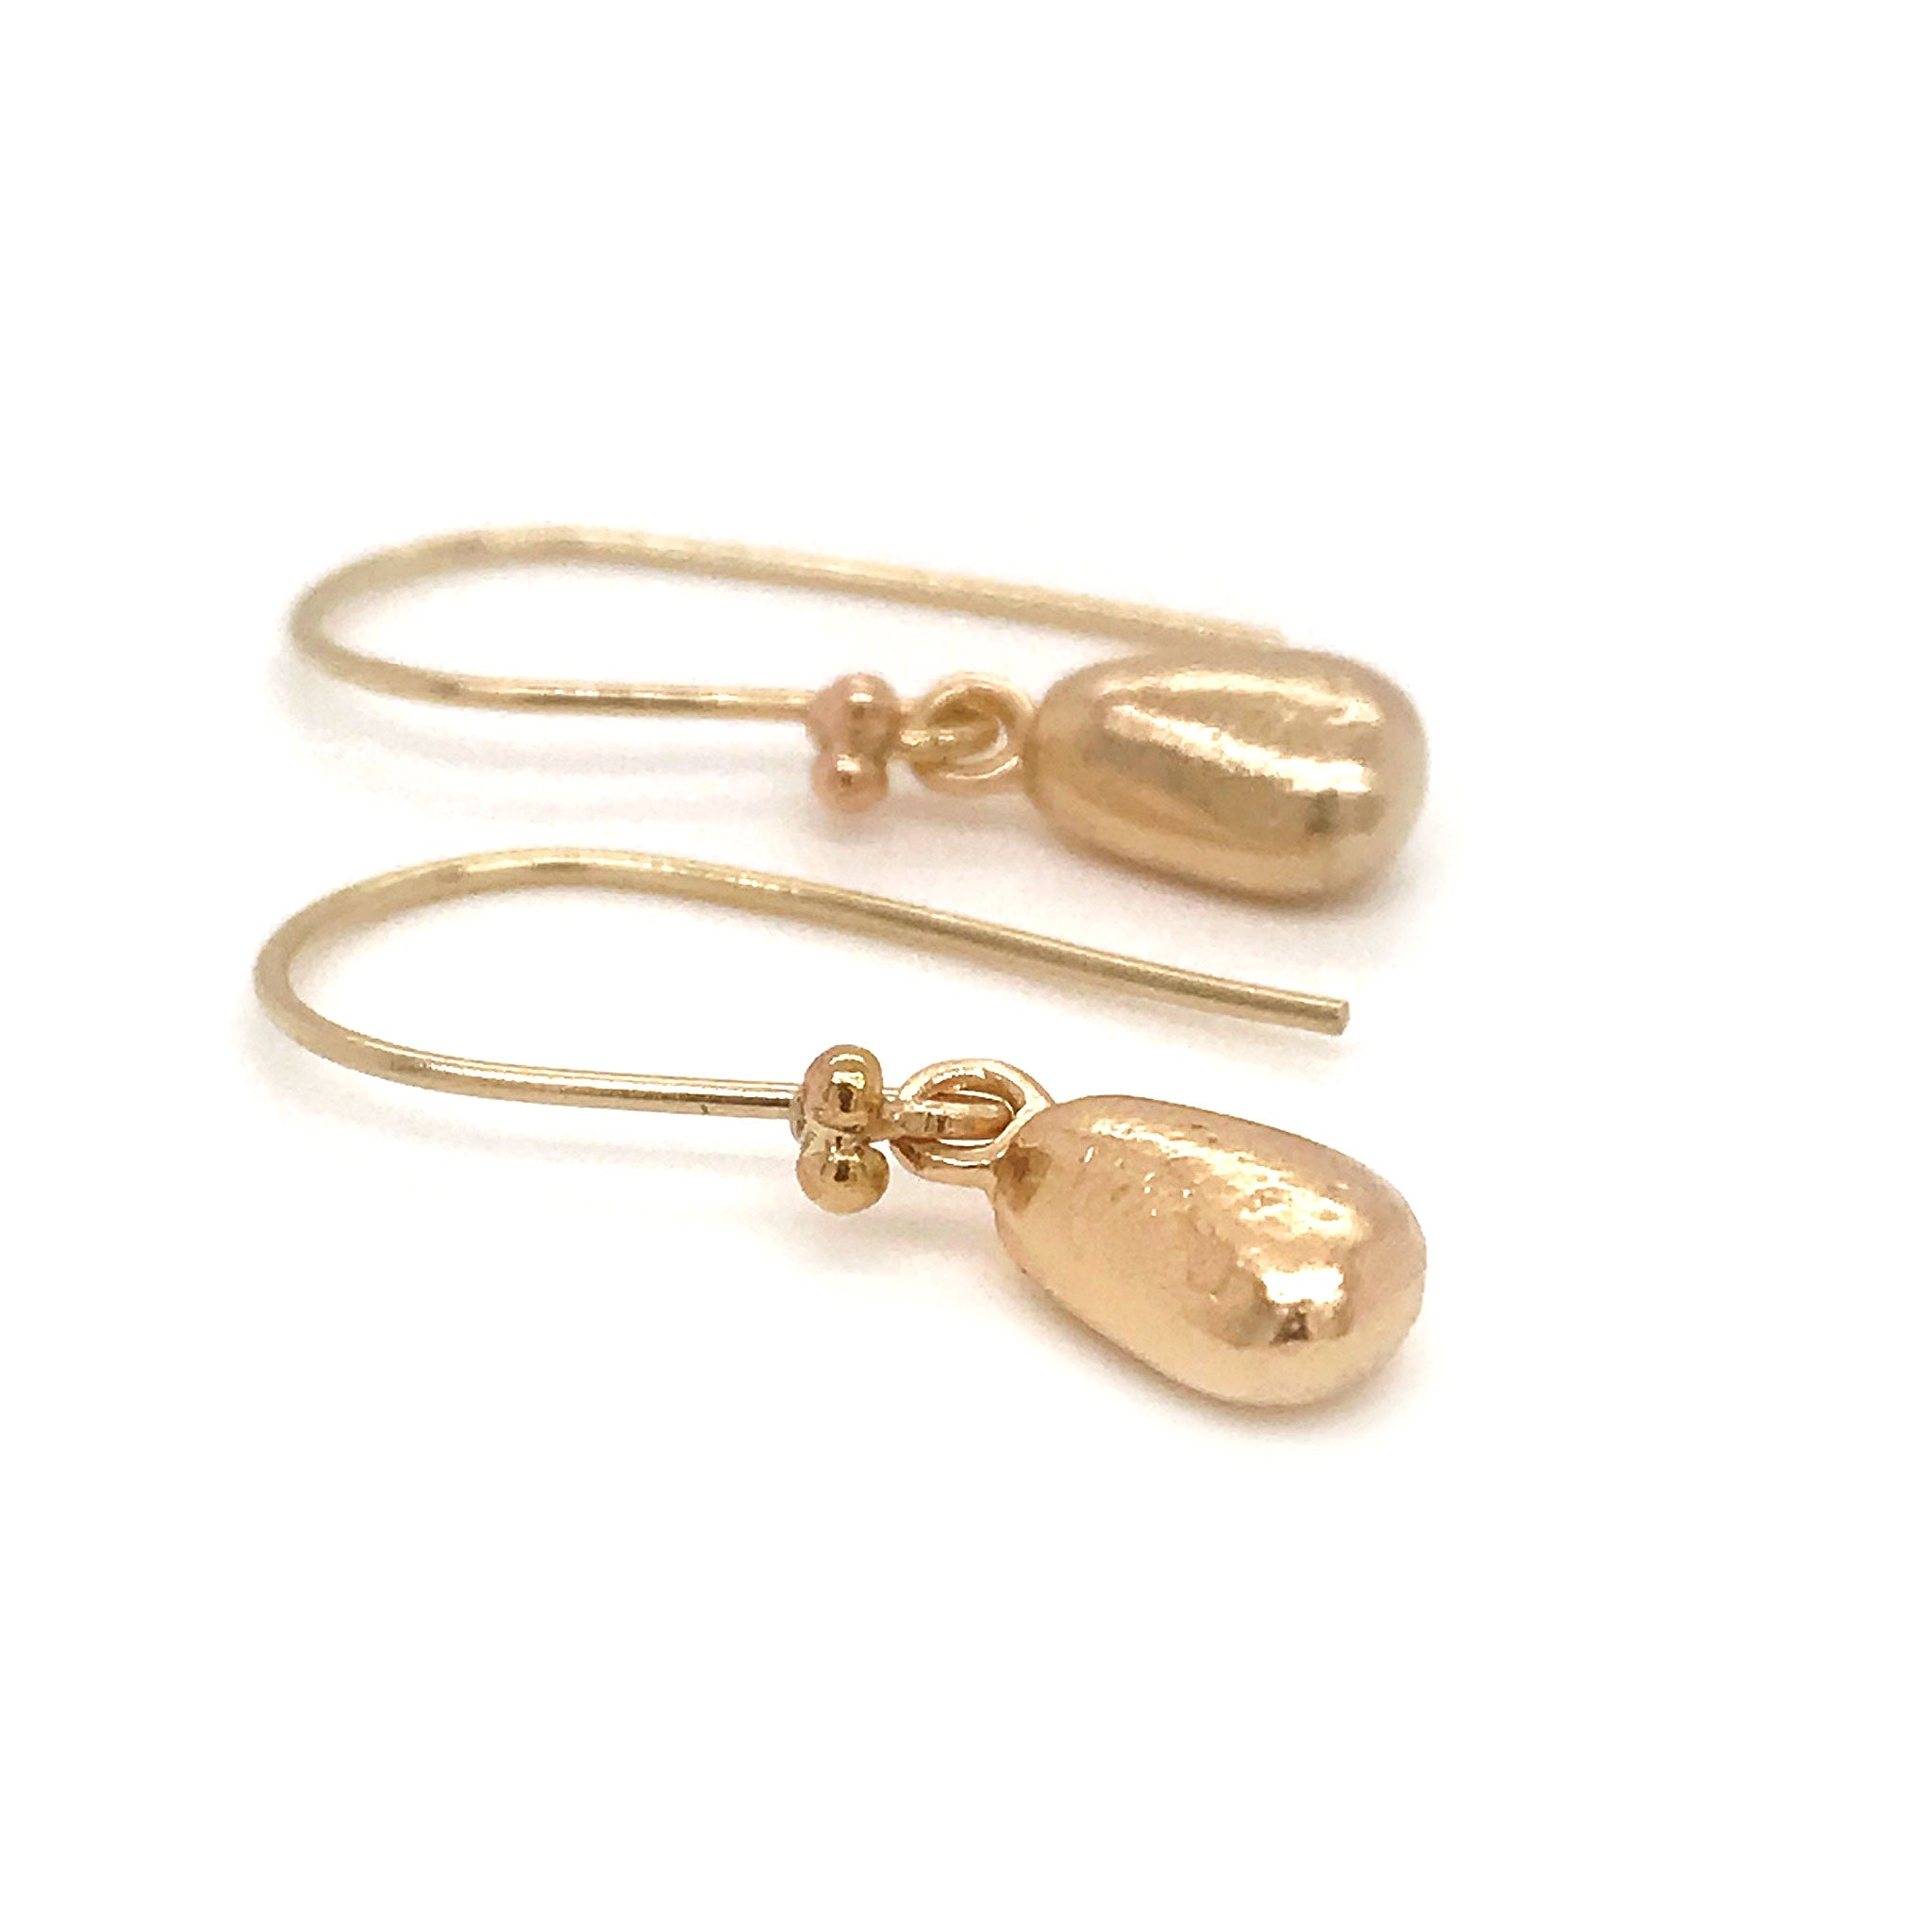 gold earrings with solid gold seaglass charms kriket broadhurst jewellery